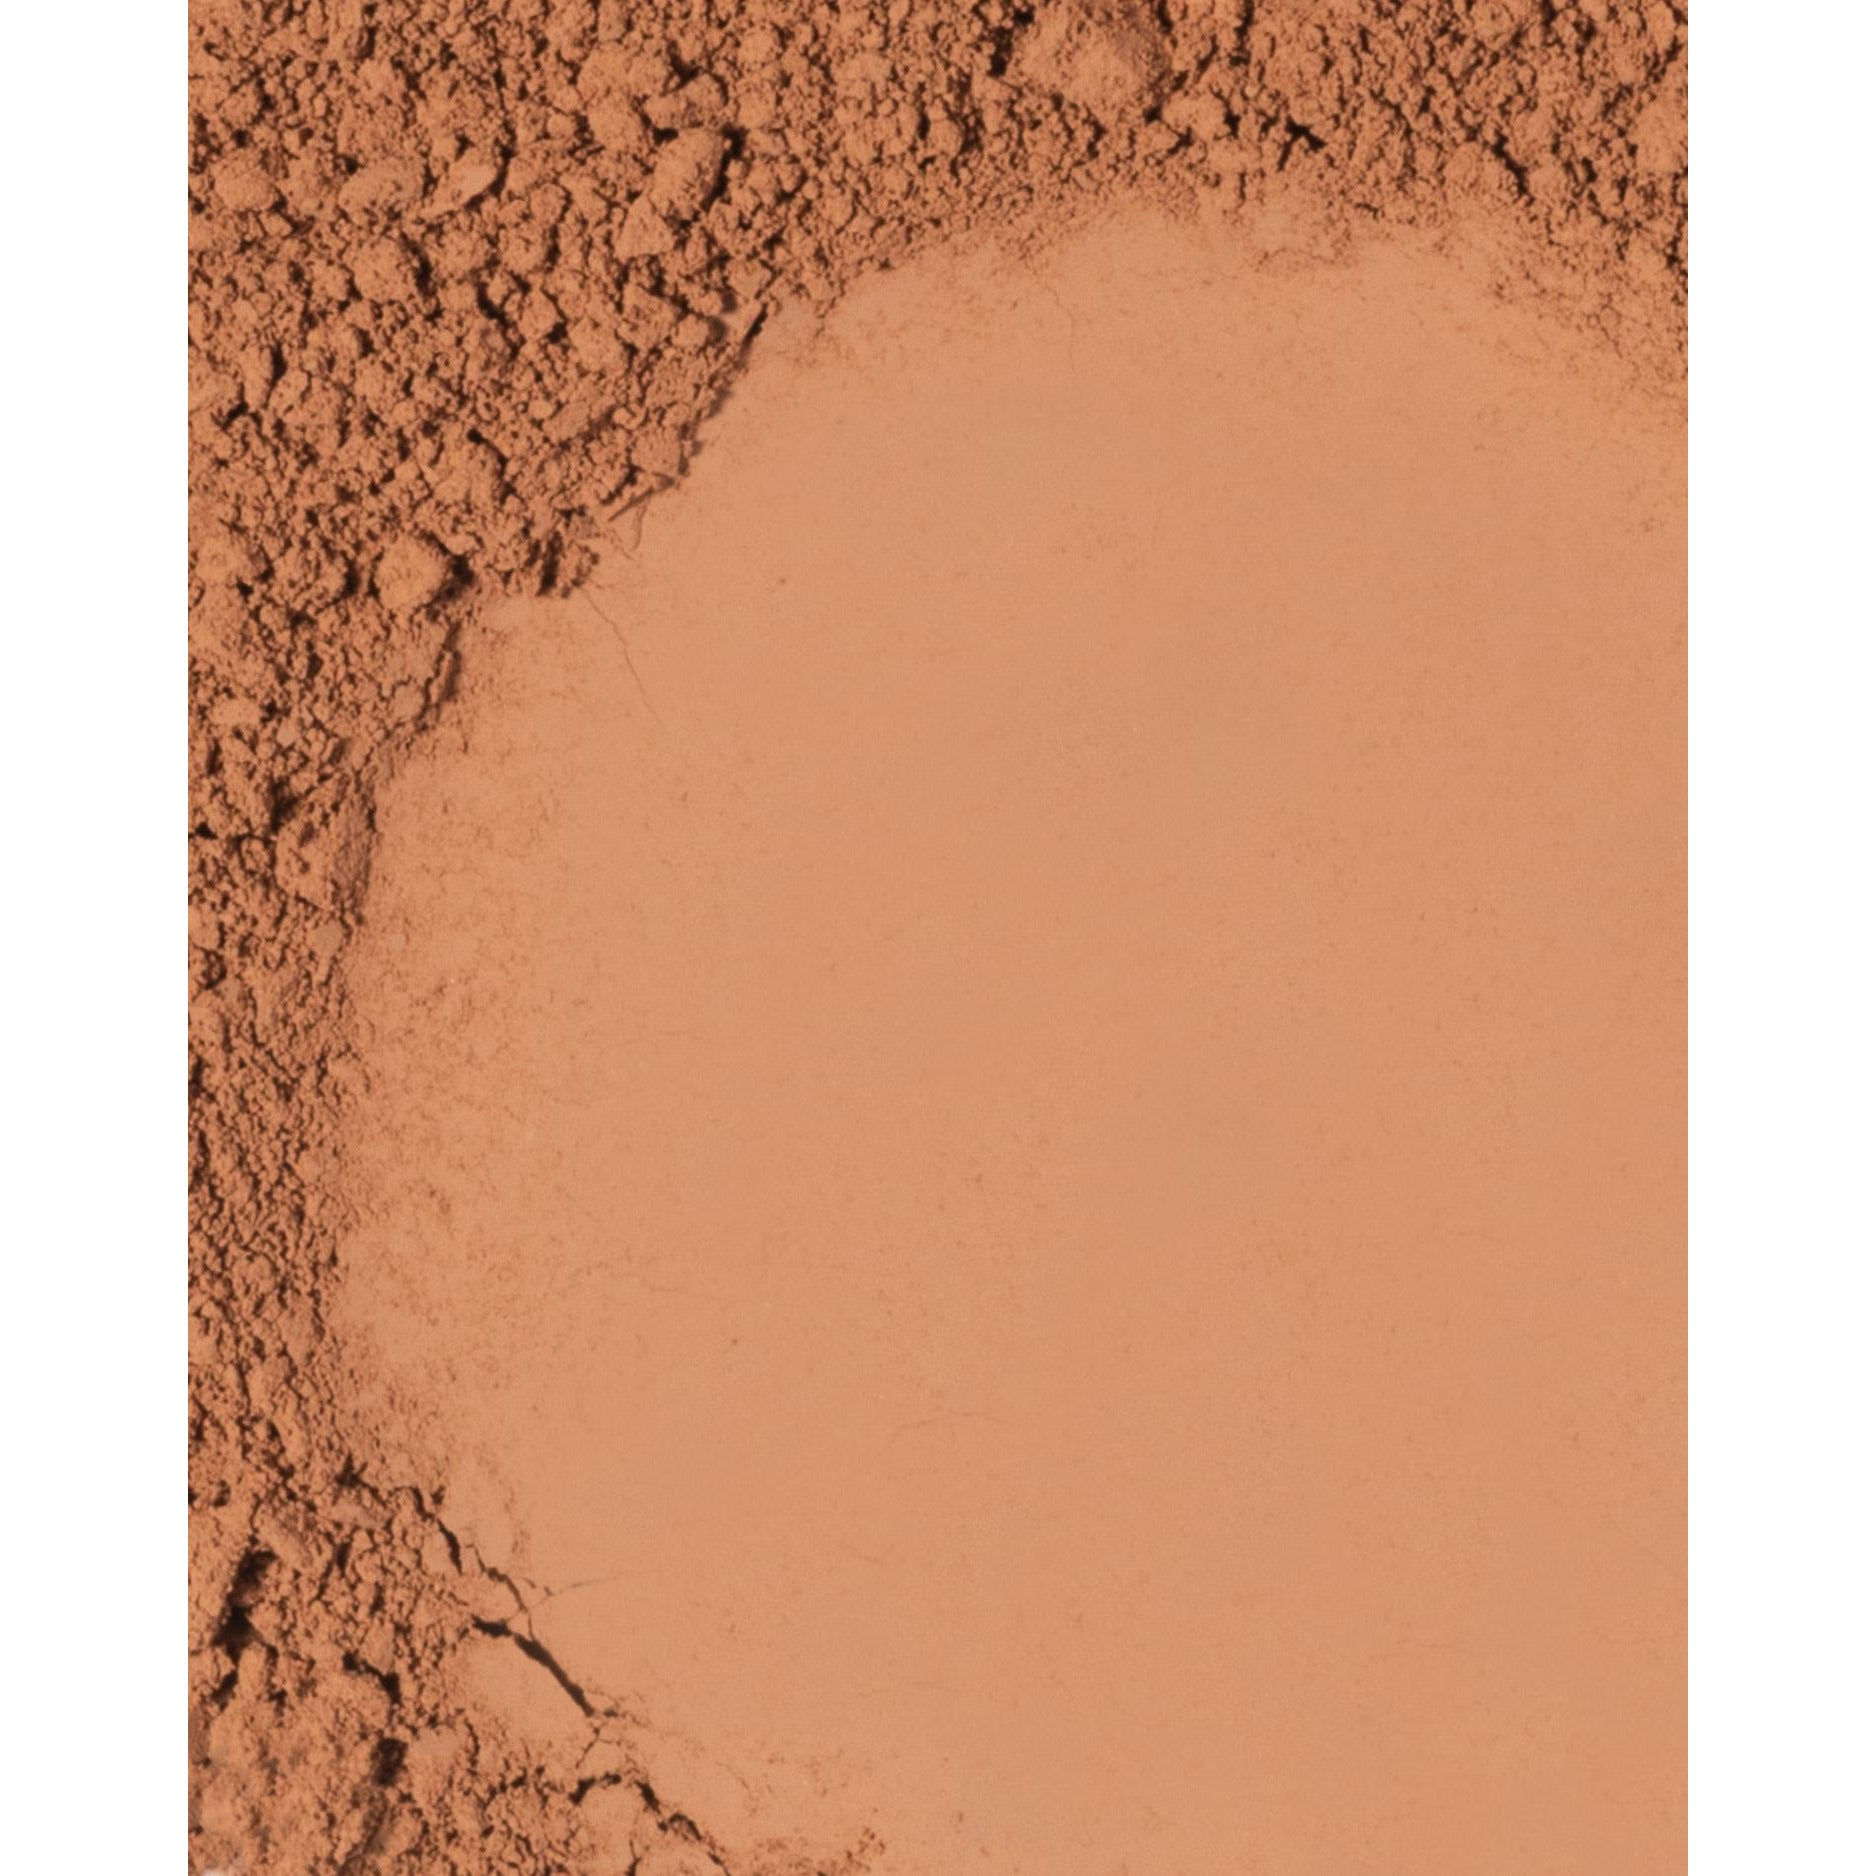 Delicate - Omiana Loose Powder Mineral Foundation No Titanium Dioxide and No Mica